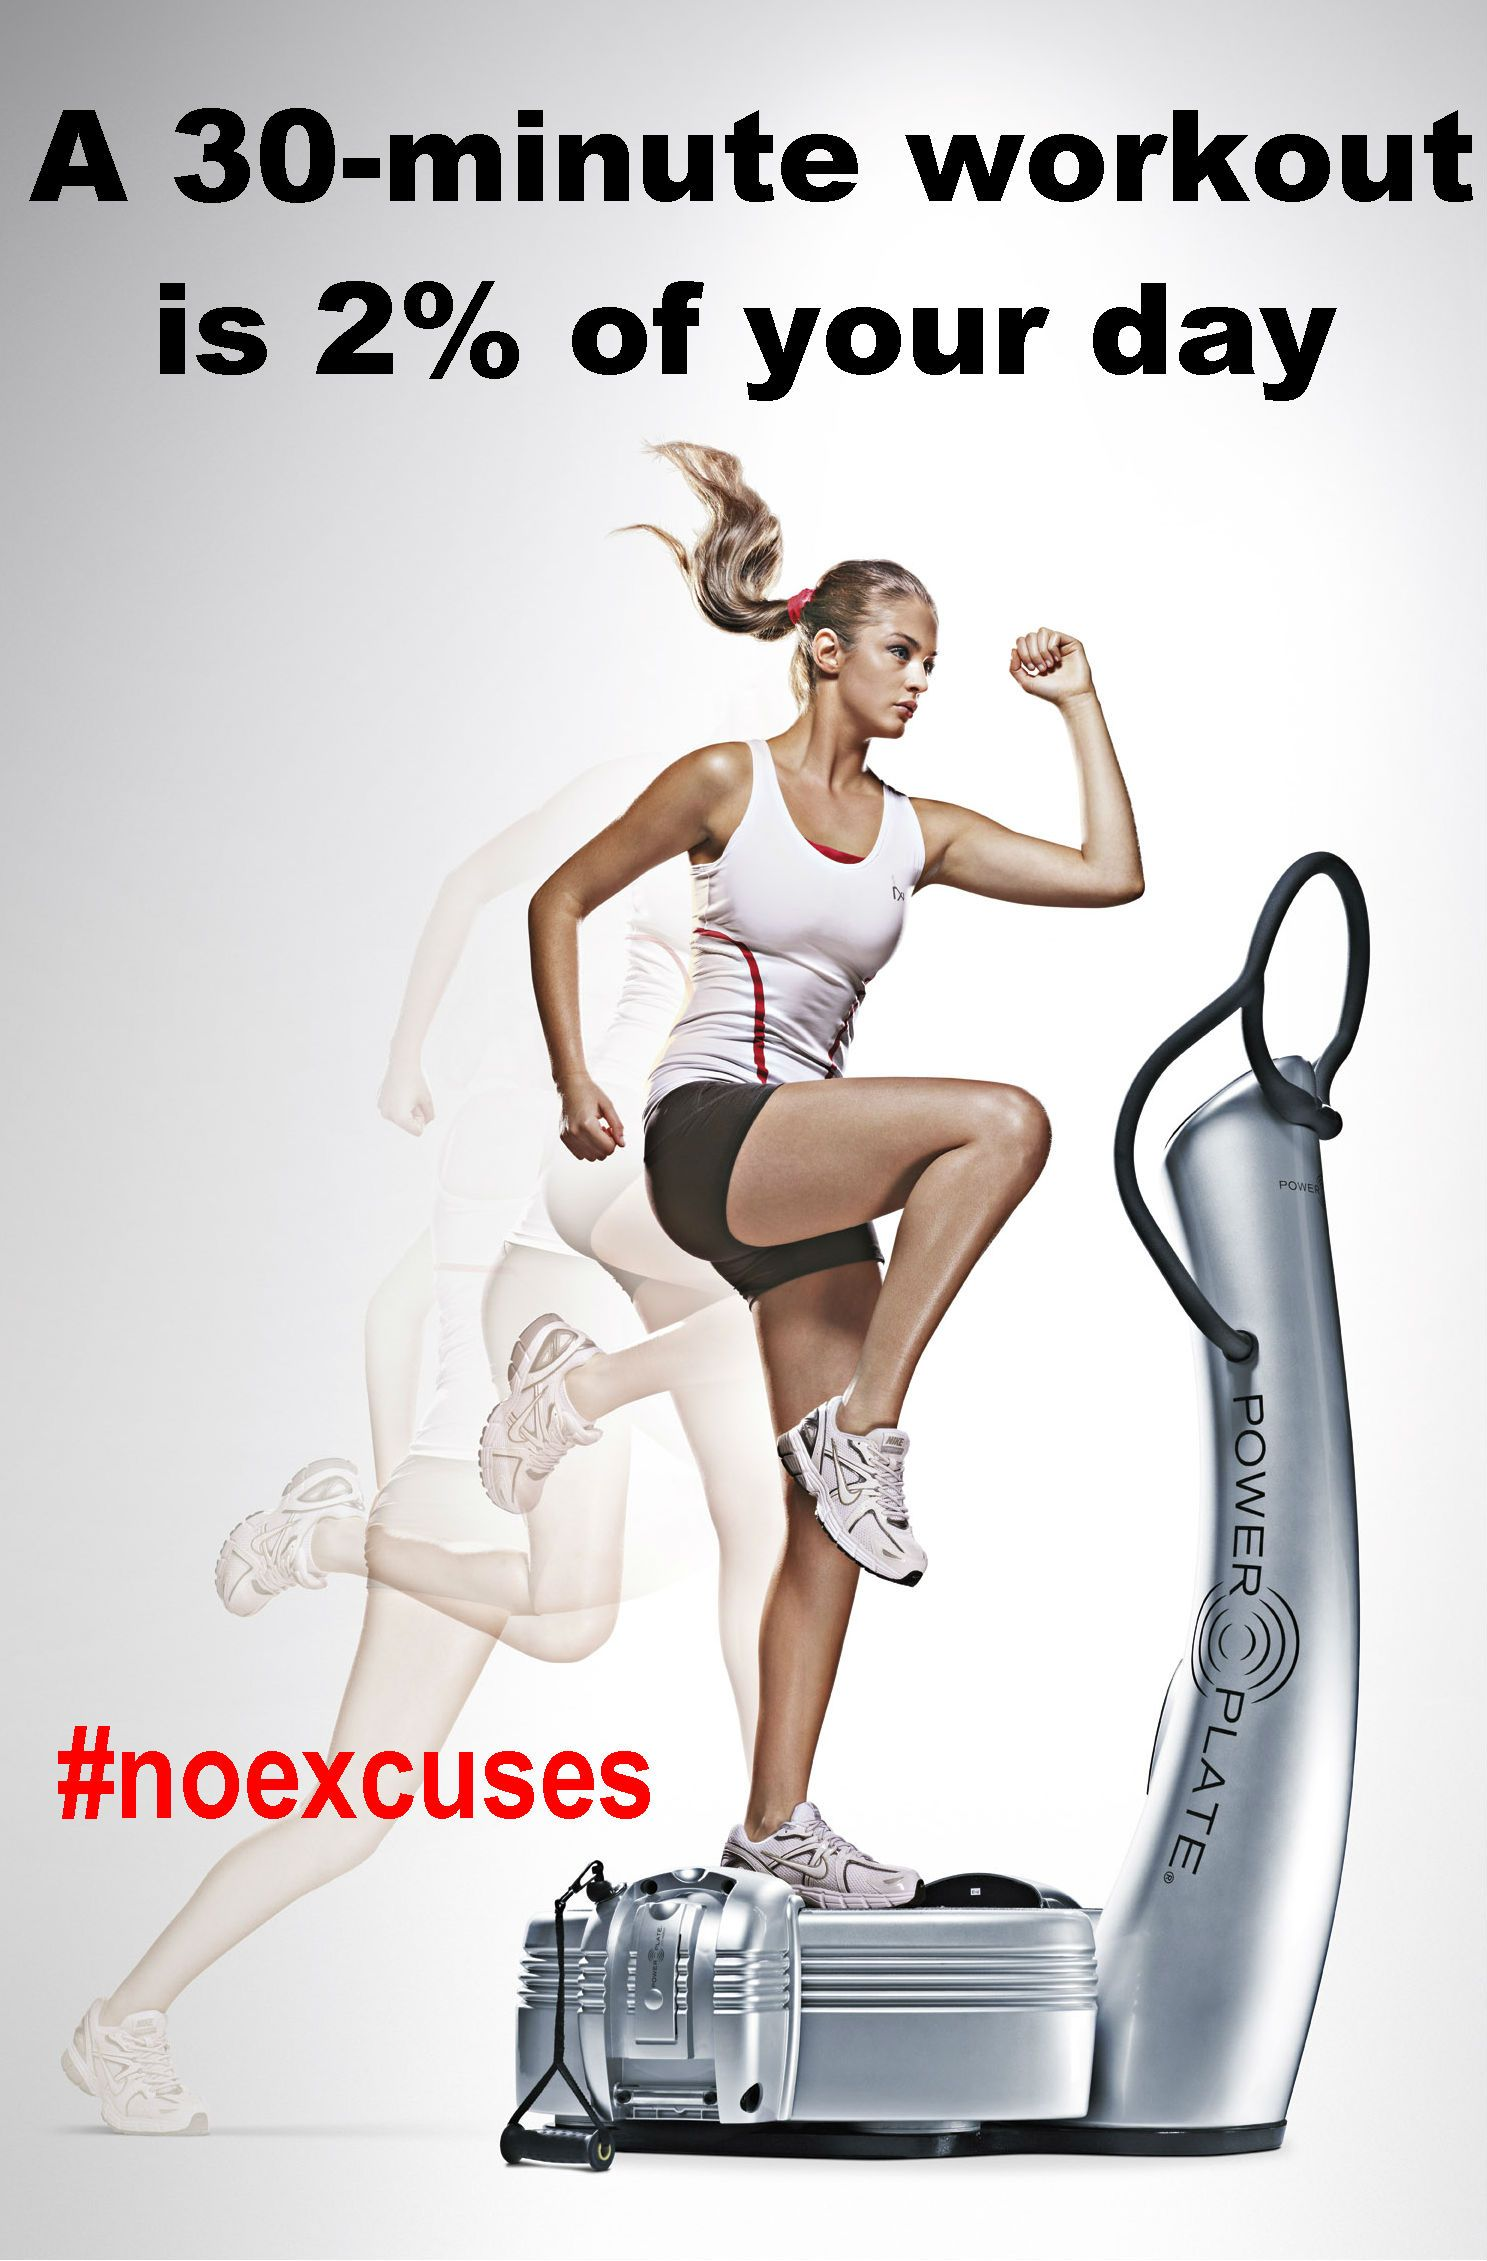 A 30-min workout is 2% of your day. #noexcuses